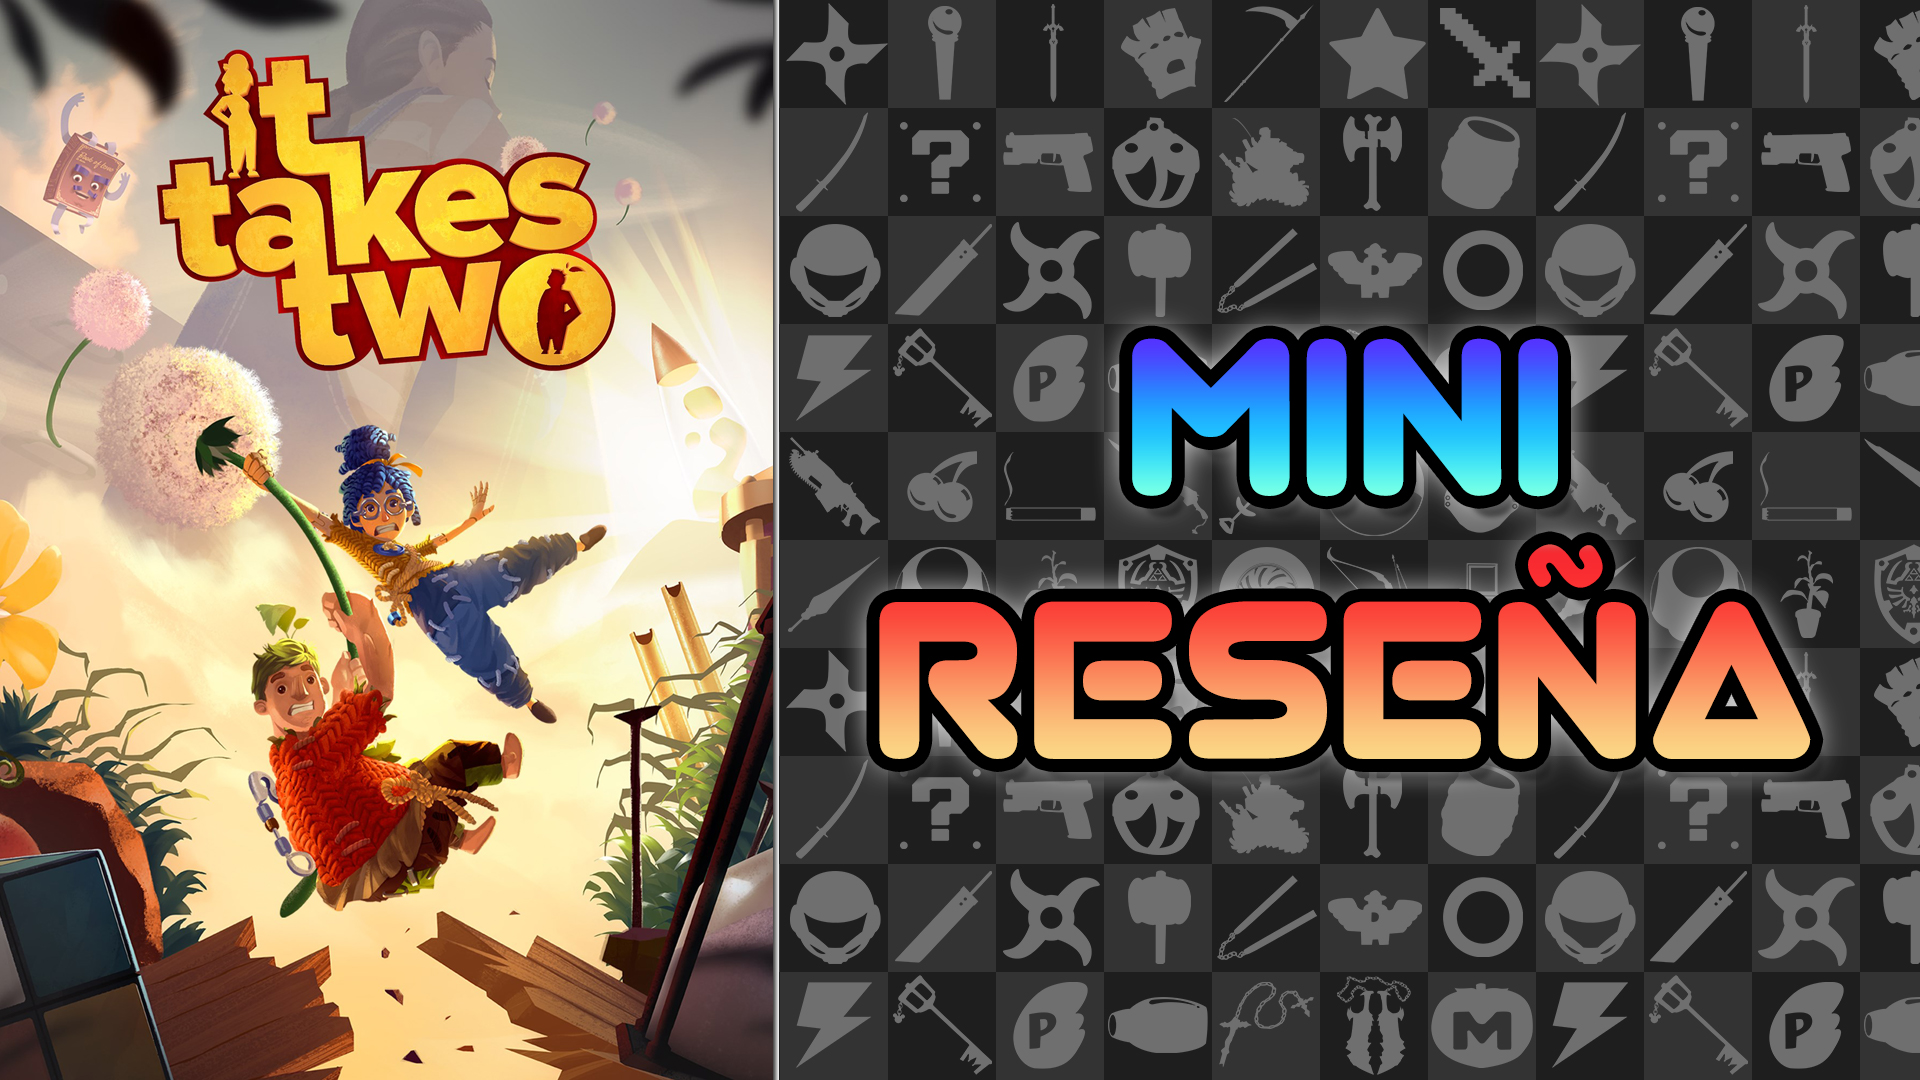 Mini Reseña It Takes Two – Terapia extrema de pareja